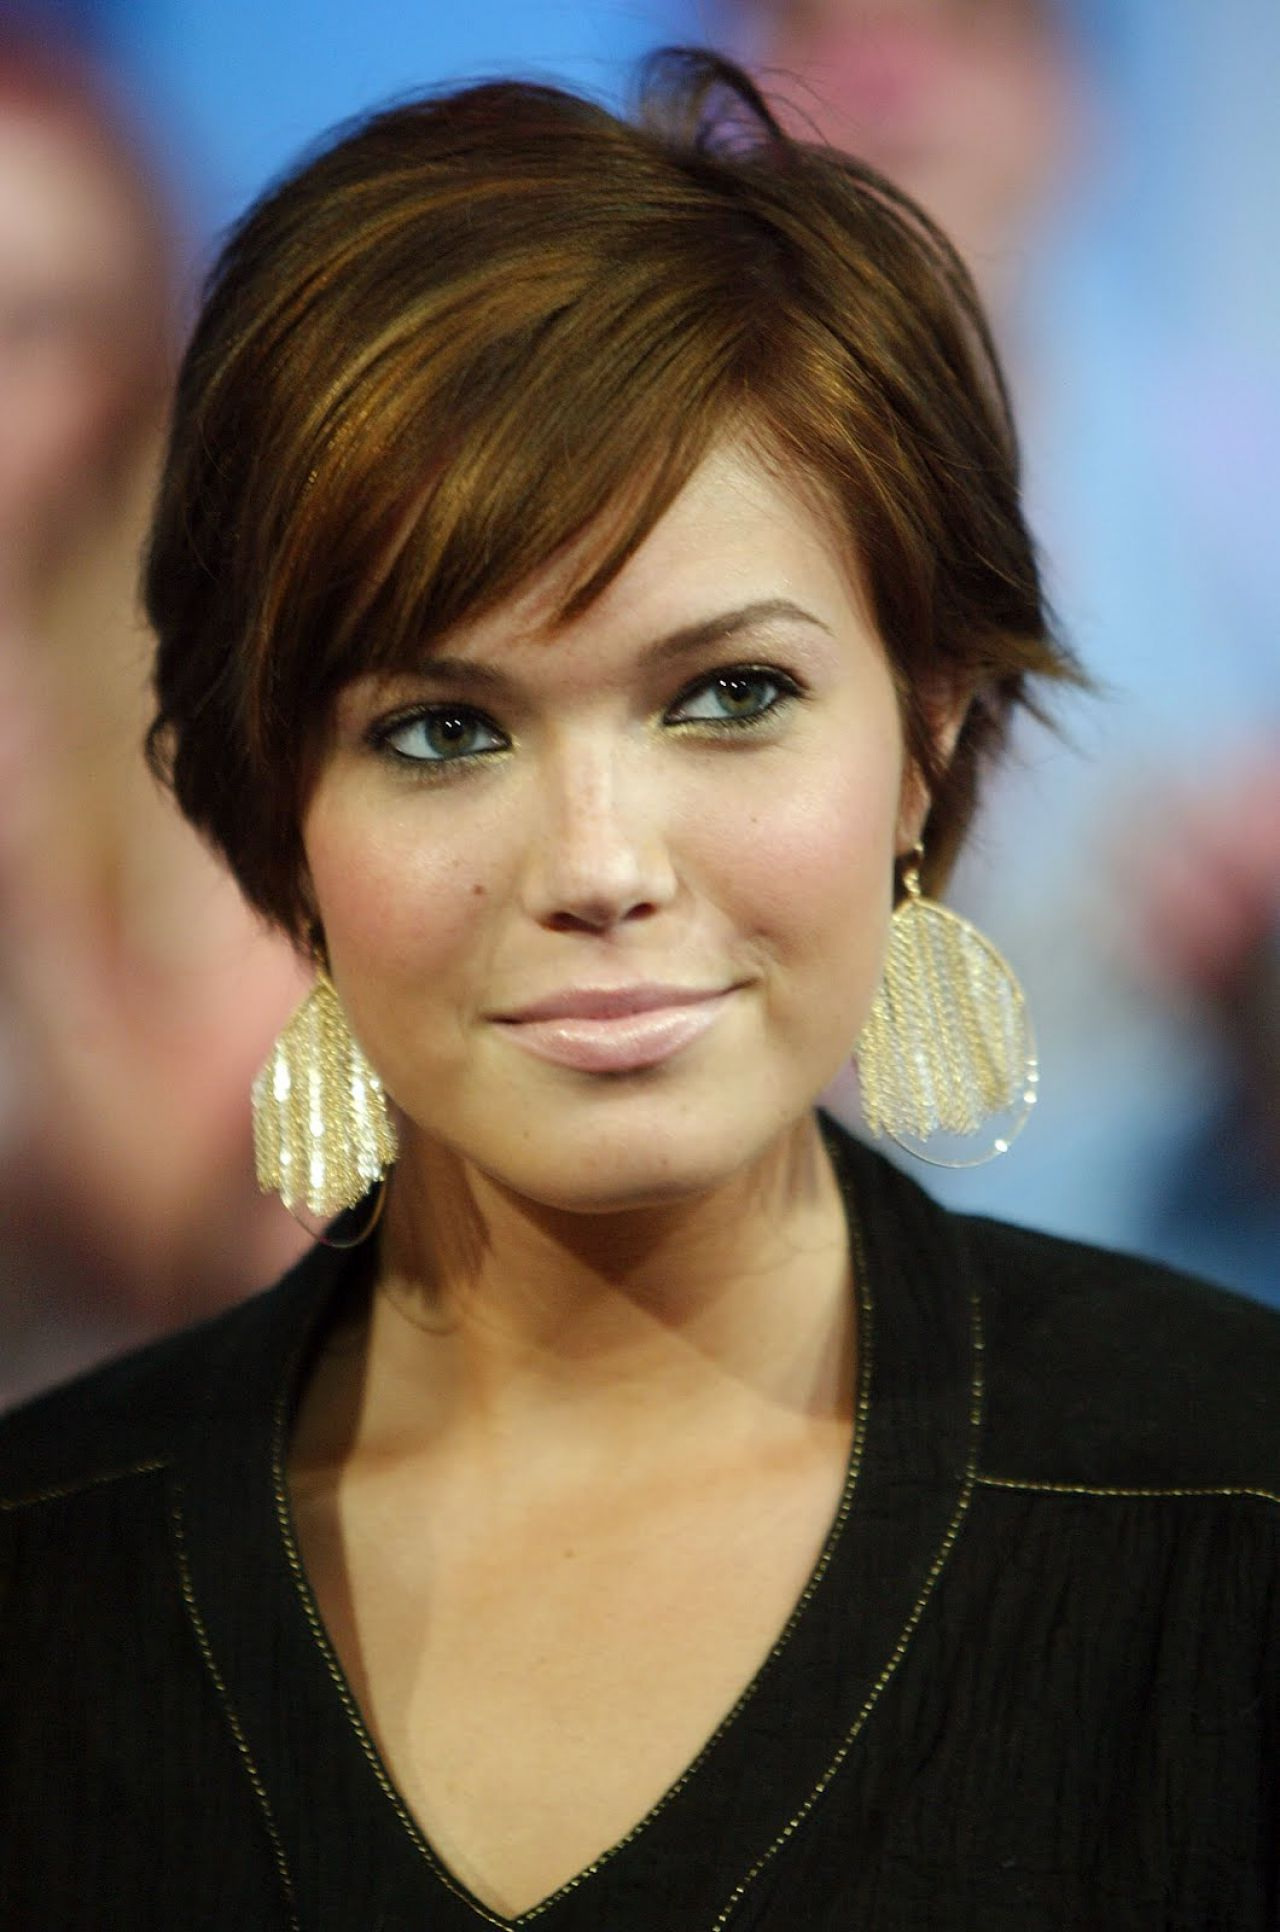 Short Hairstyles For Square Faces Female – Google Search Pertaining To Short Haircuts For Round Chubby Faces (View 23 of 25)